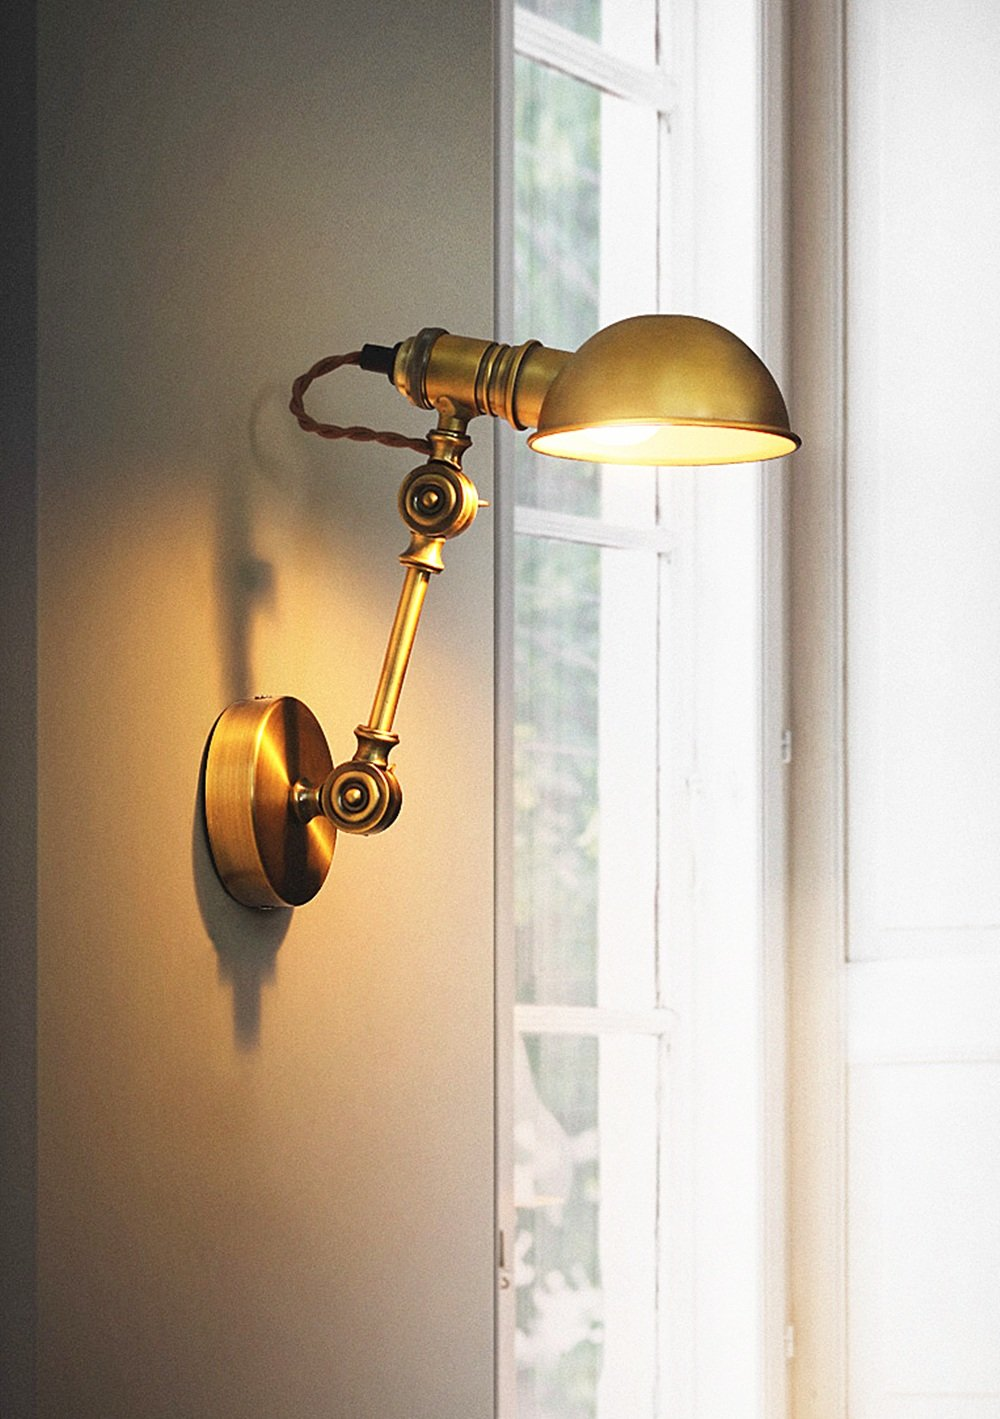 Swing Arm Wall Lamp Adjustable Wall Lamps 1 Light Wall Sconce Industrial Wall Lamp Mounted Lighting Fixture (Color : A) - - Amazon.com